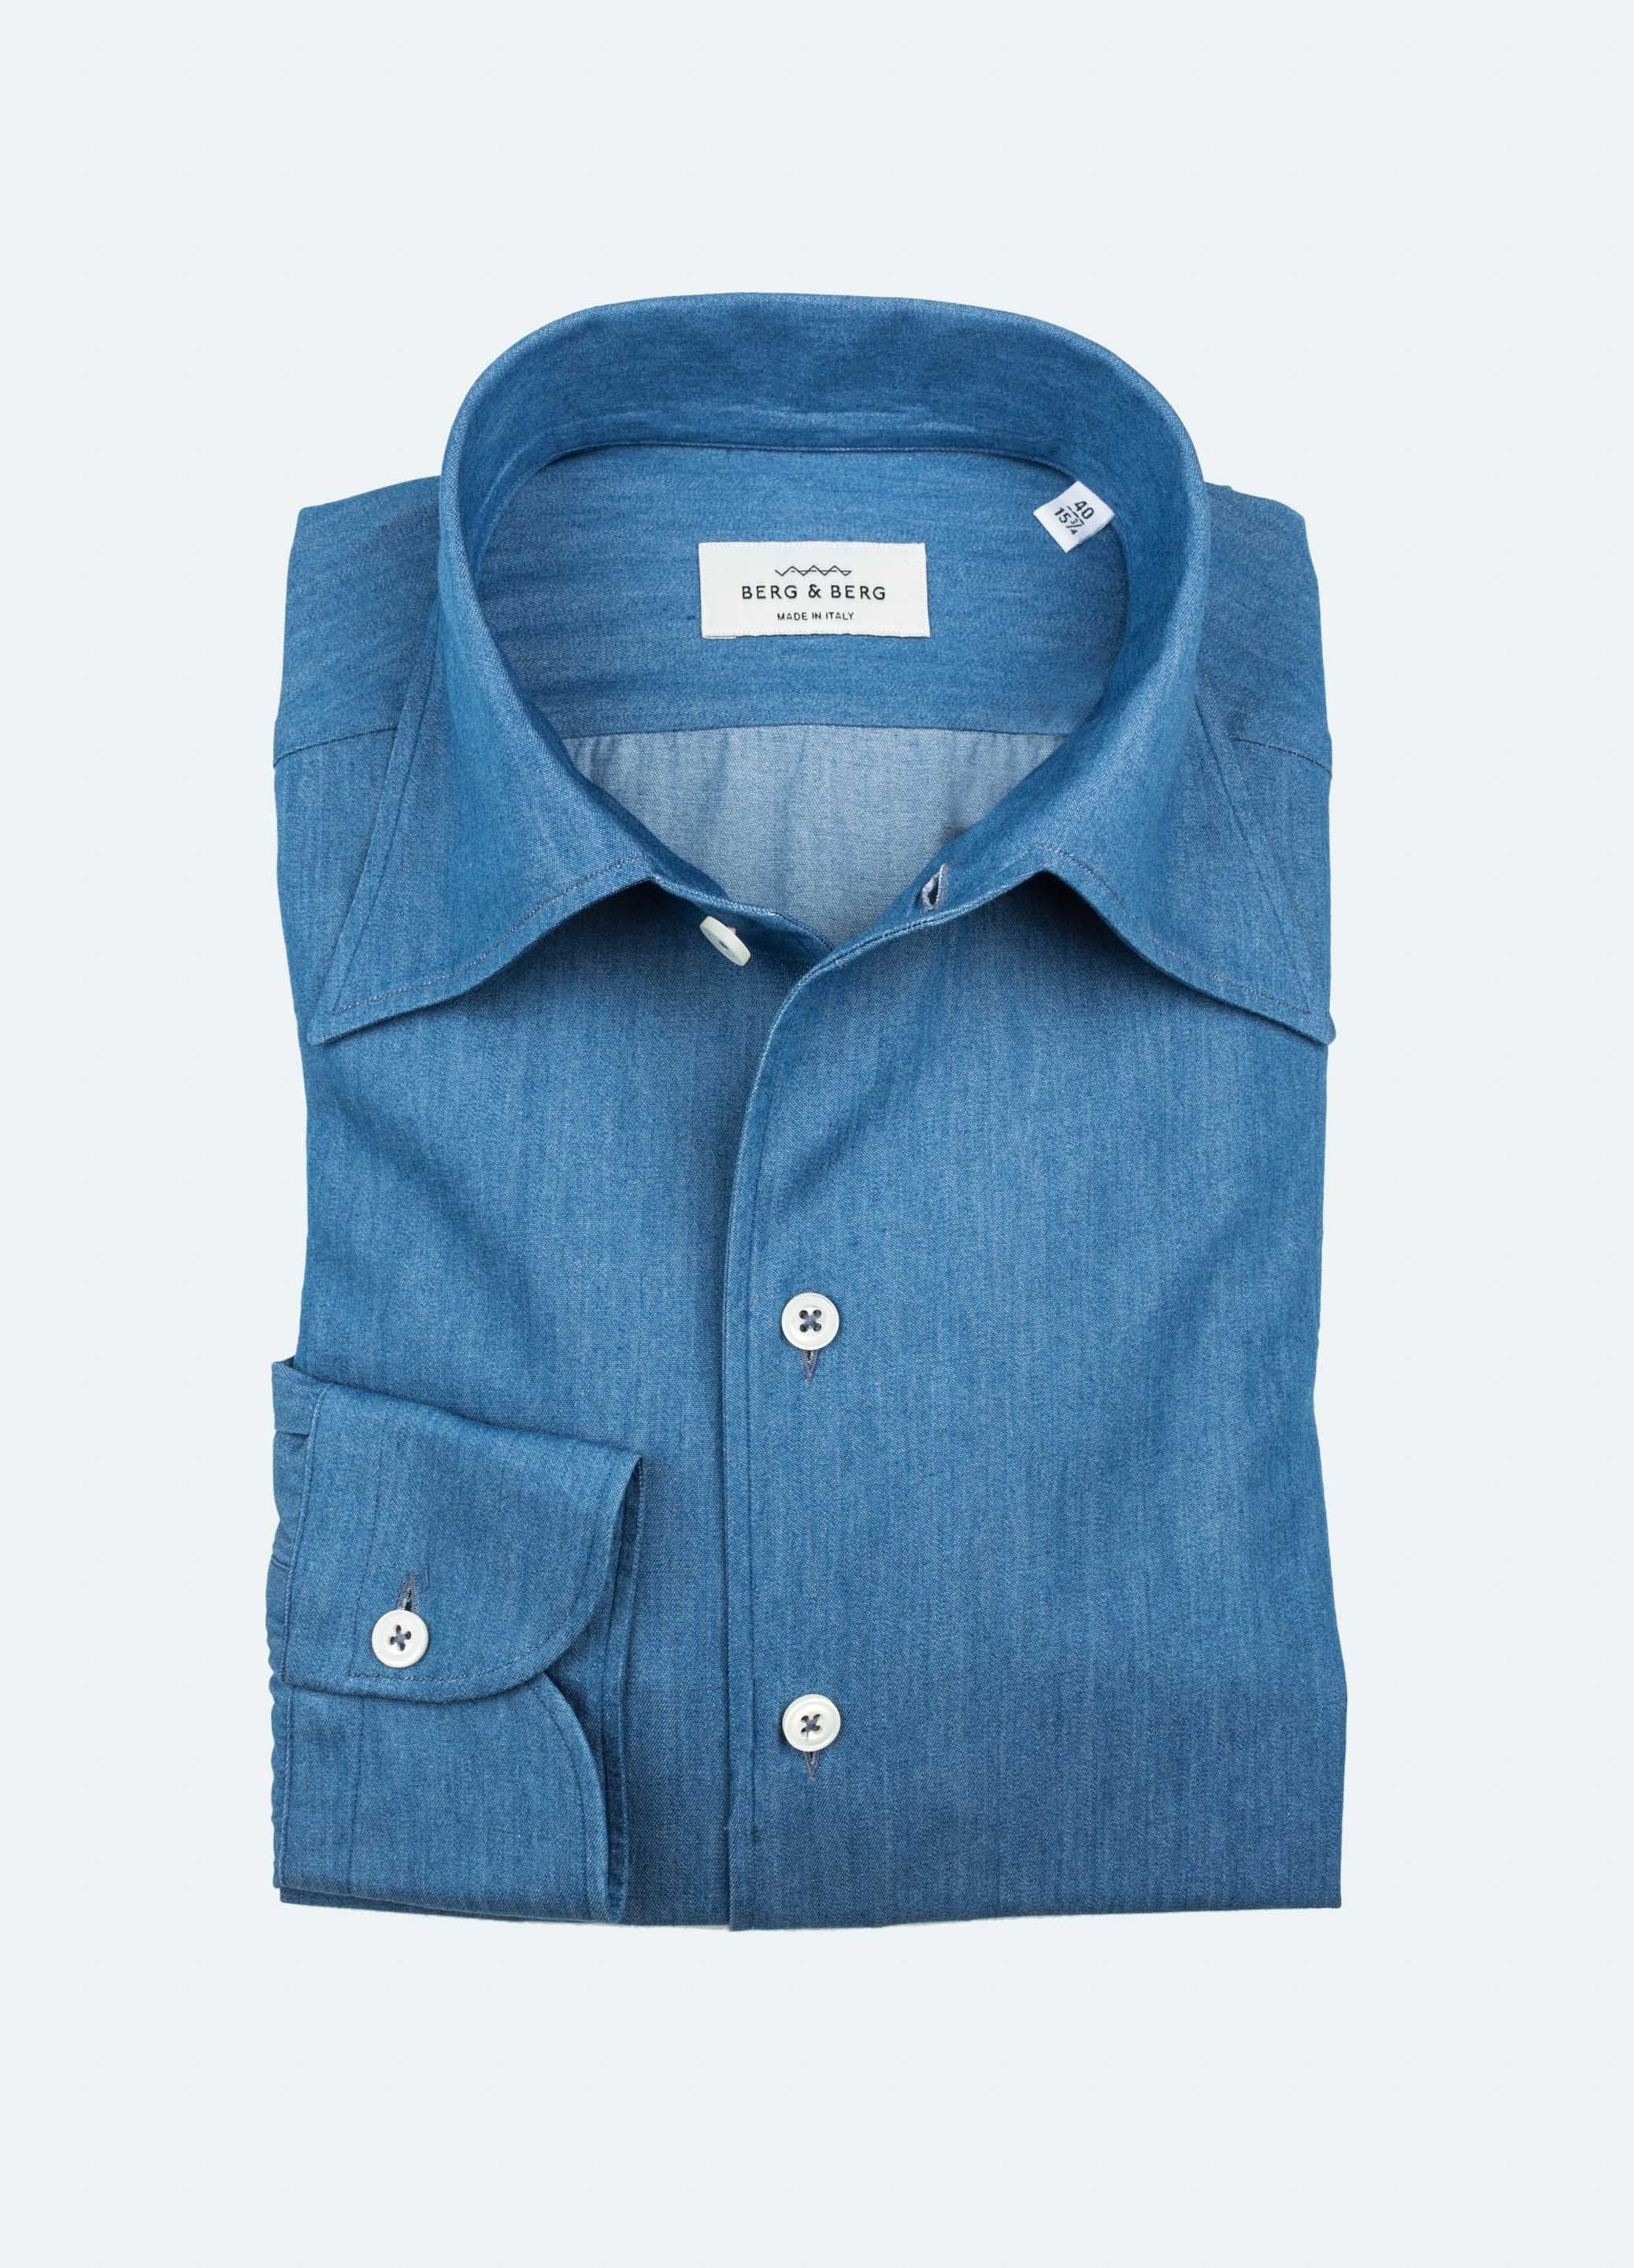 Chambray One Piece Collar Shirt